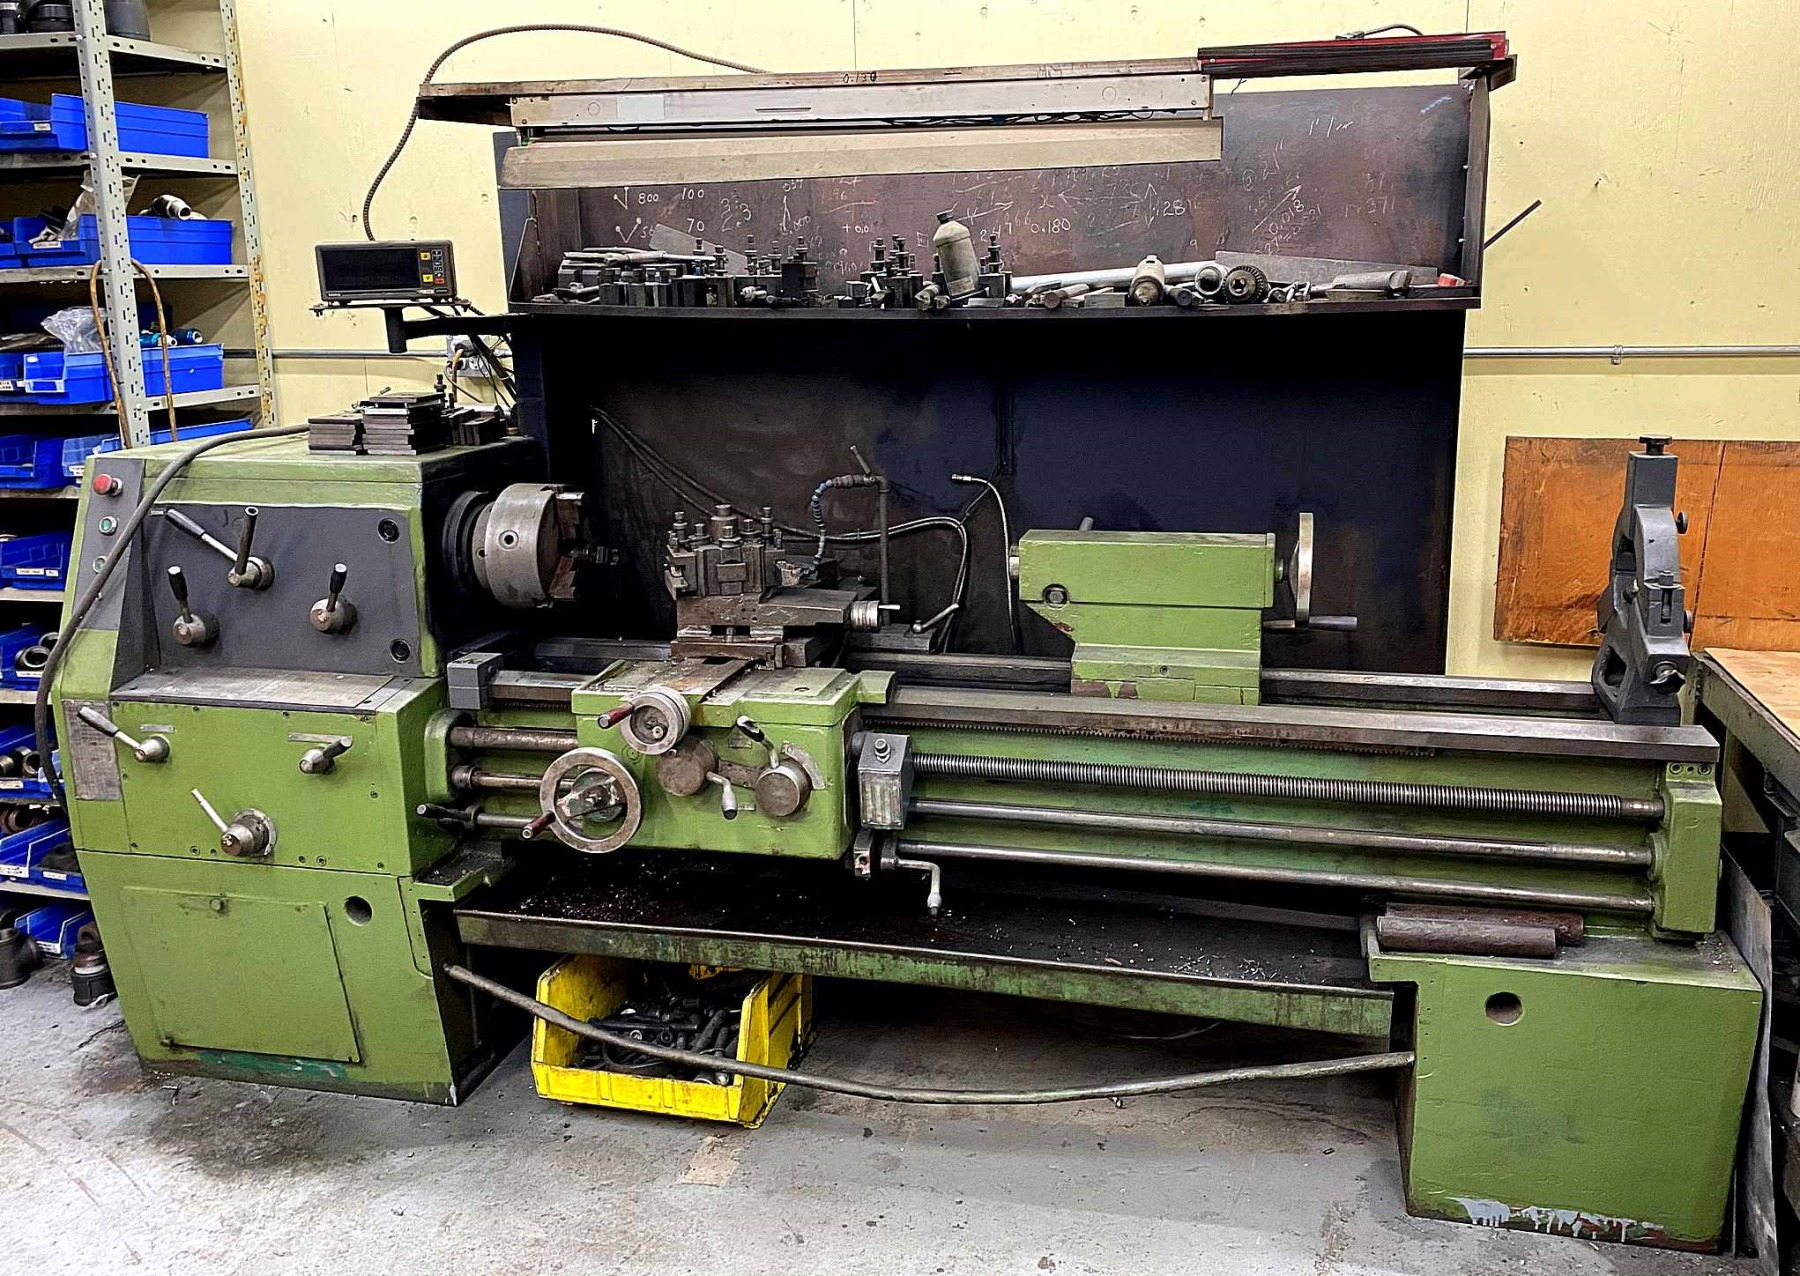 Used AFM TUG-40 Universal Lathe Machine #4778